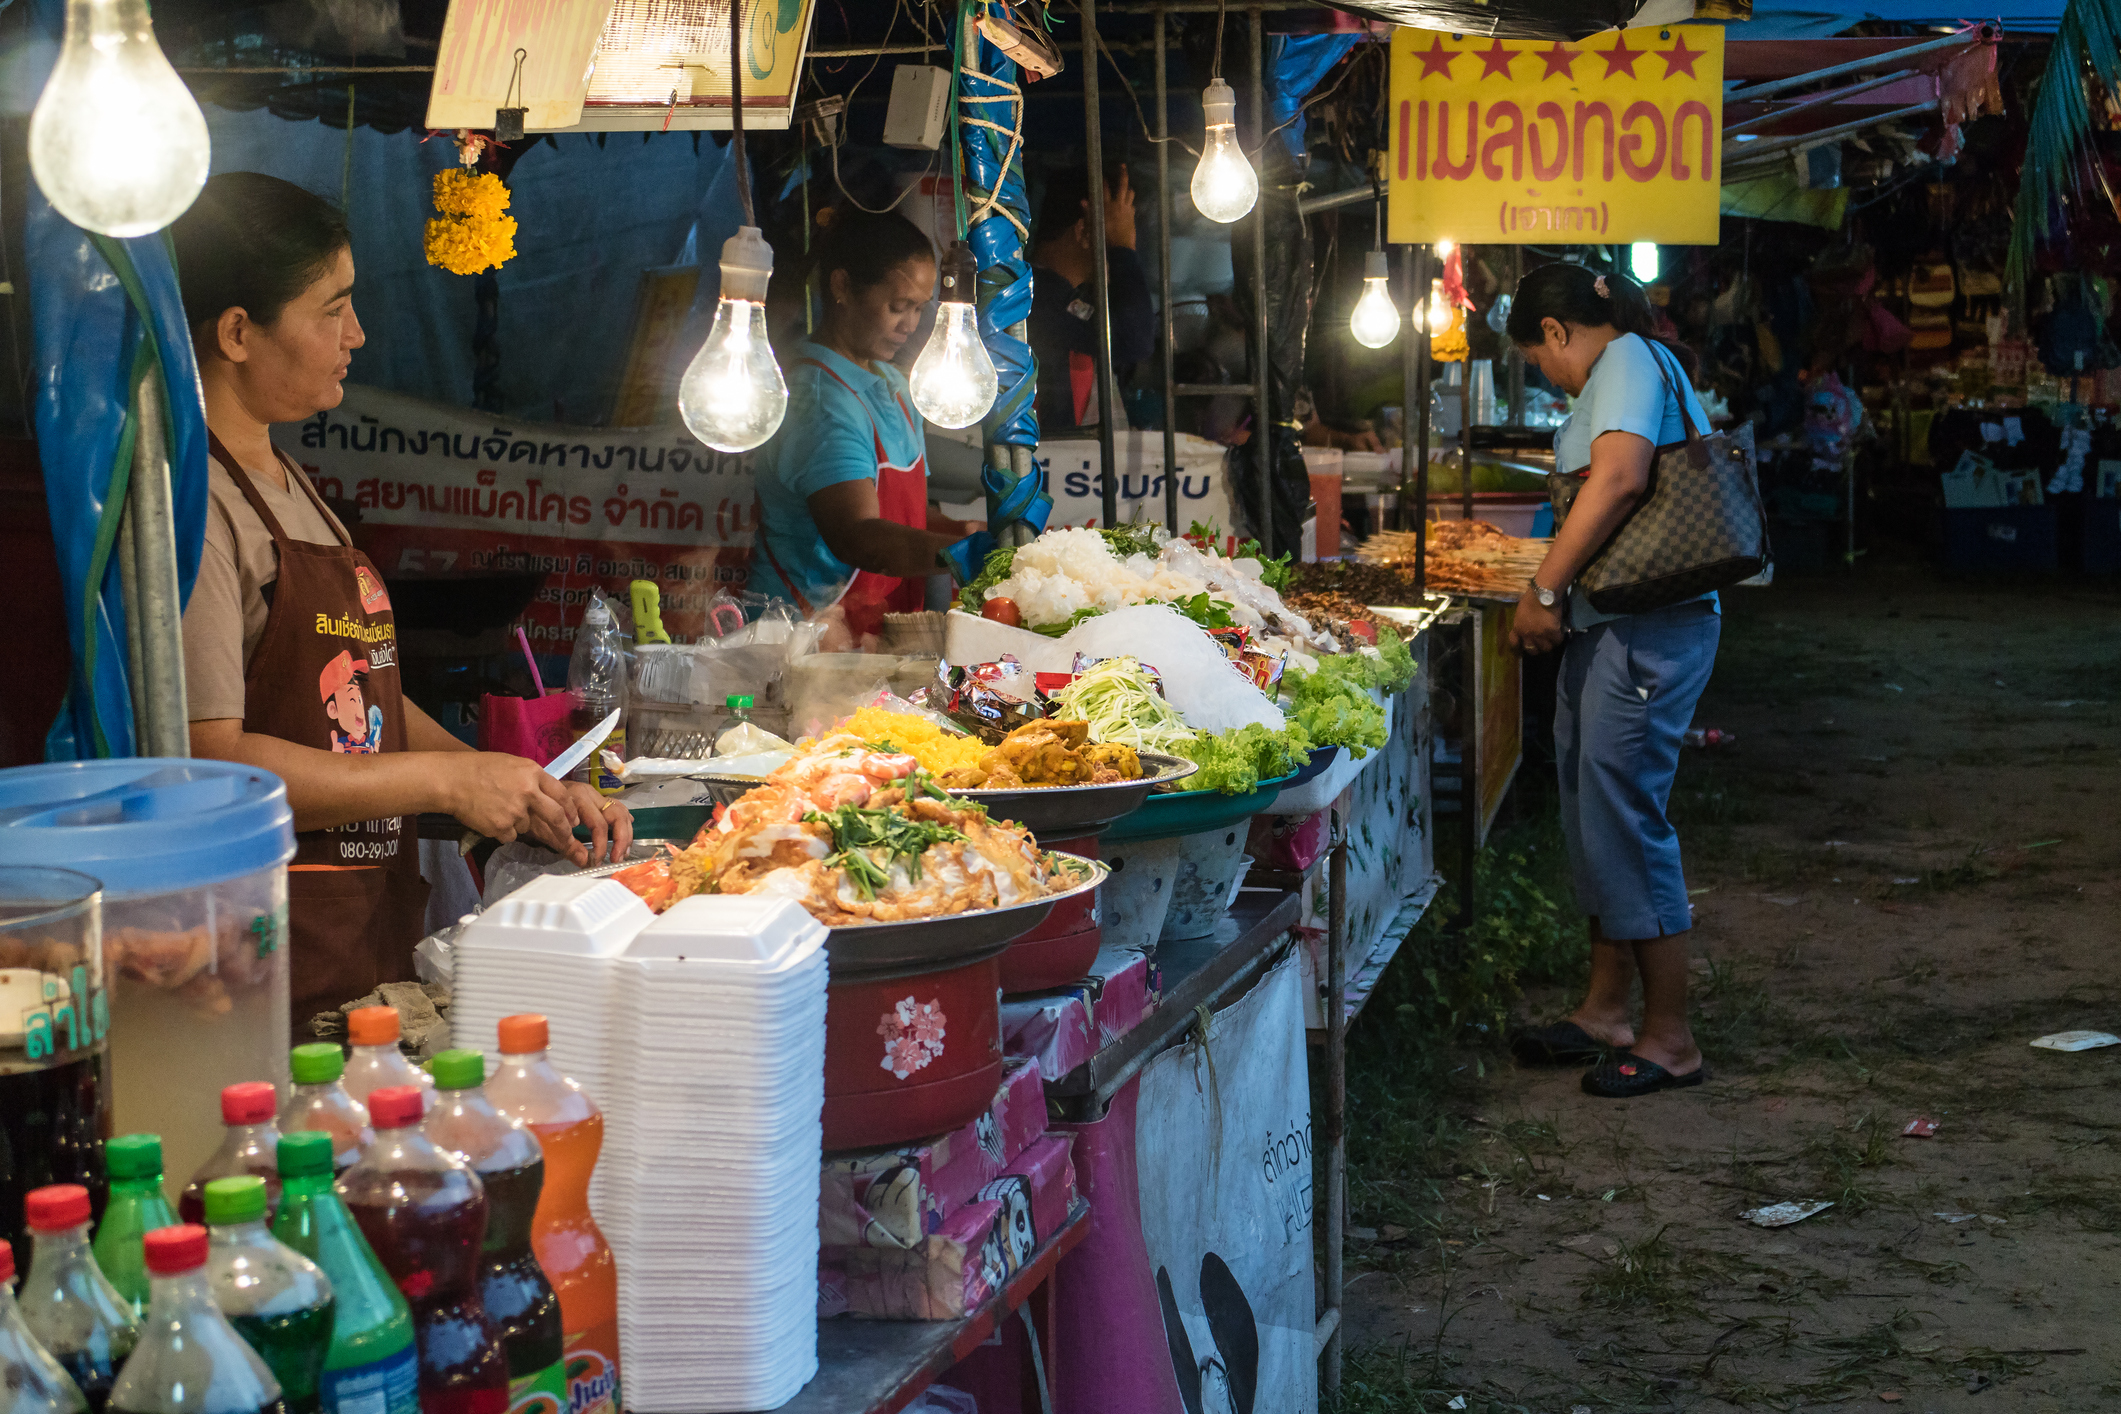 Koh Samui, Thailand - November 30, 2015: Spice saleswomen waiting for clients in an outdoor marketplace